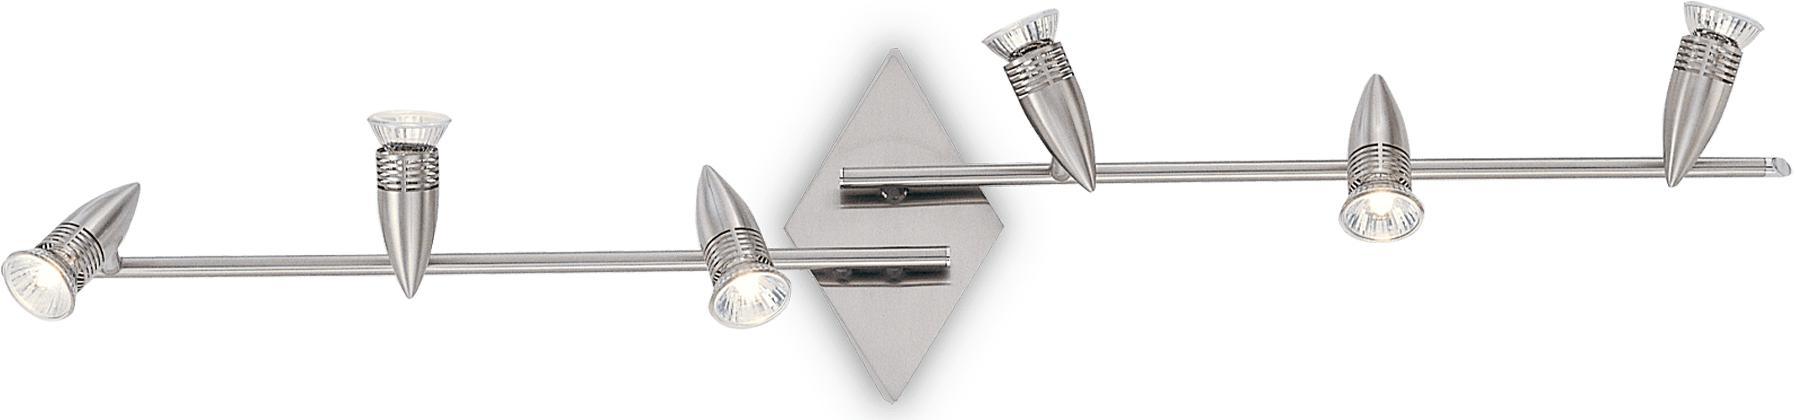 Ideal lux LED alfa pb6 nickel Pendelleuchten 6x5W 6338